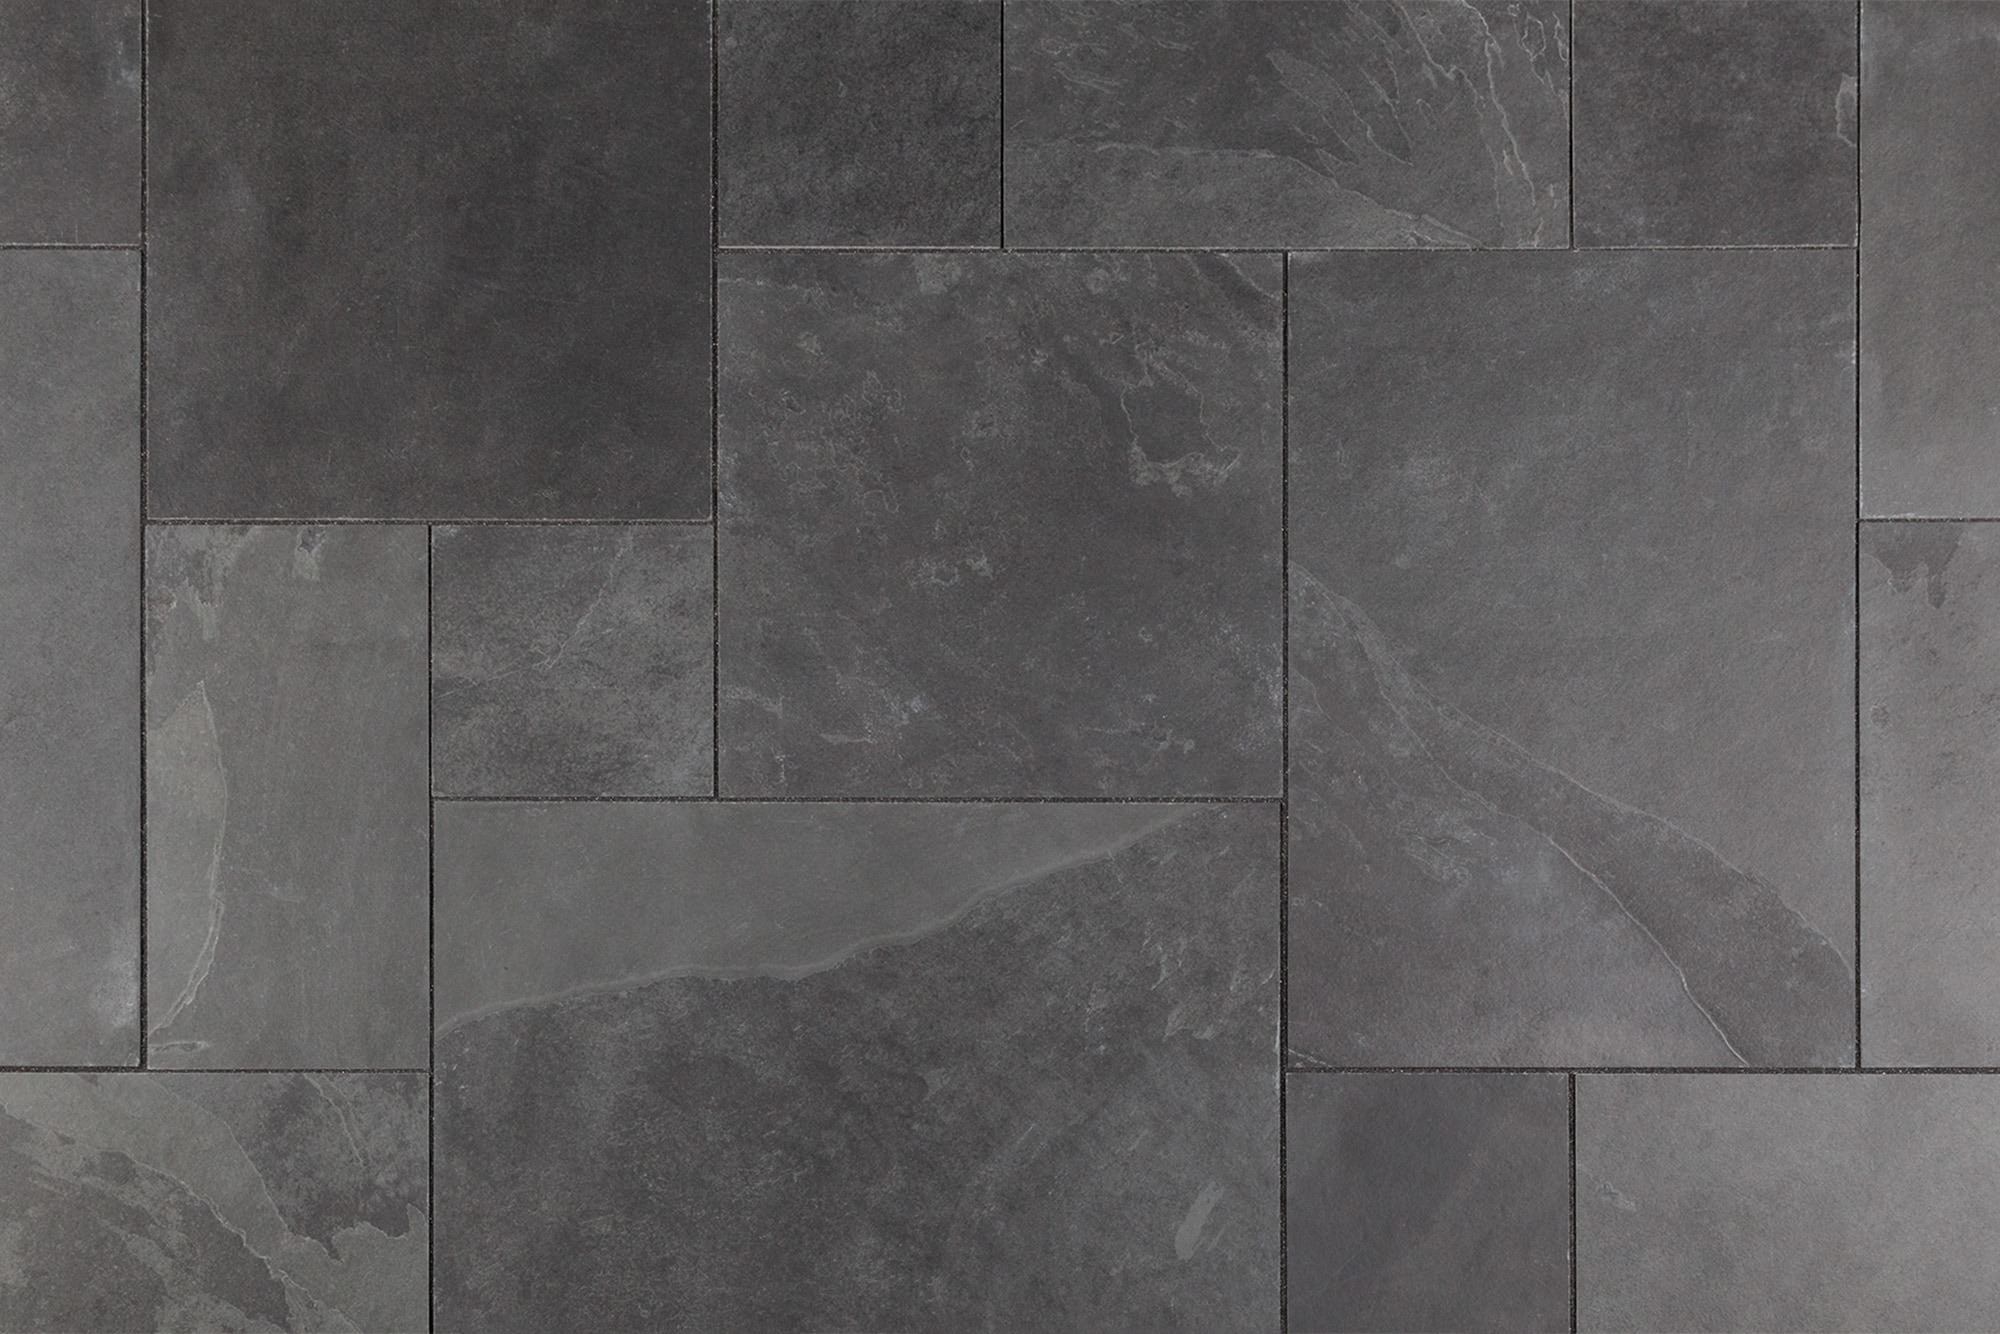 Black Slate Patter : Buy montauk black french pattern pavers wallandtile